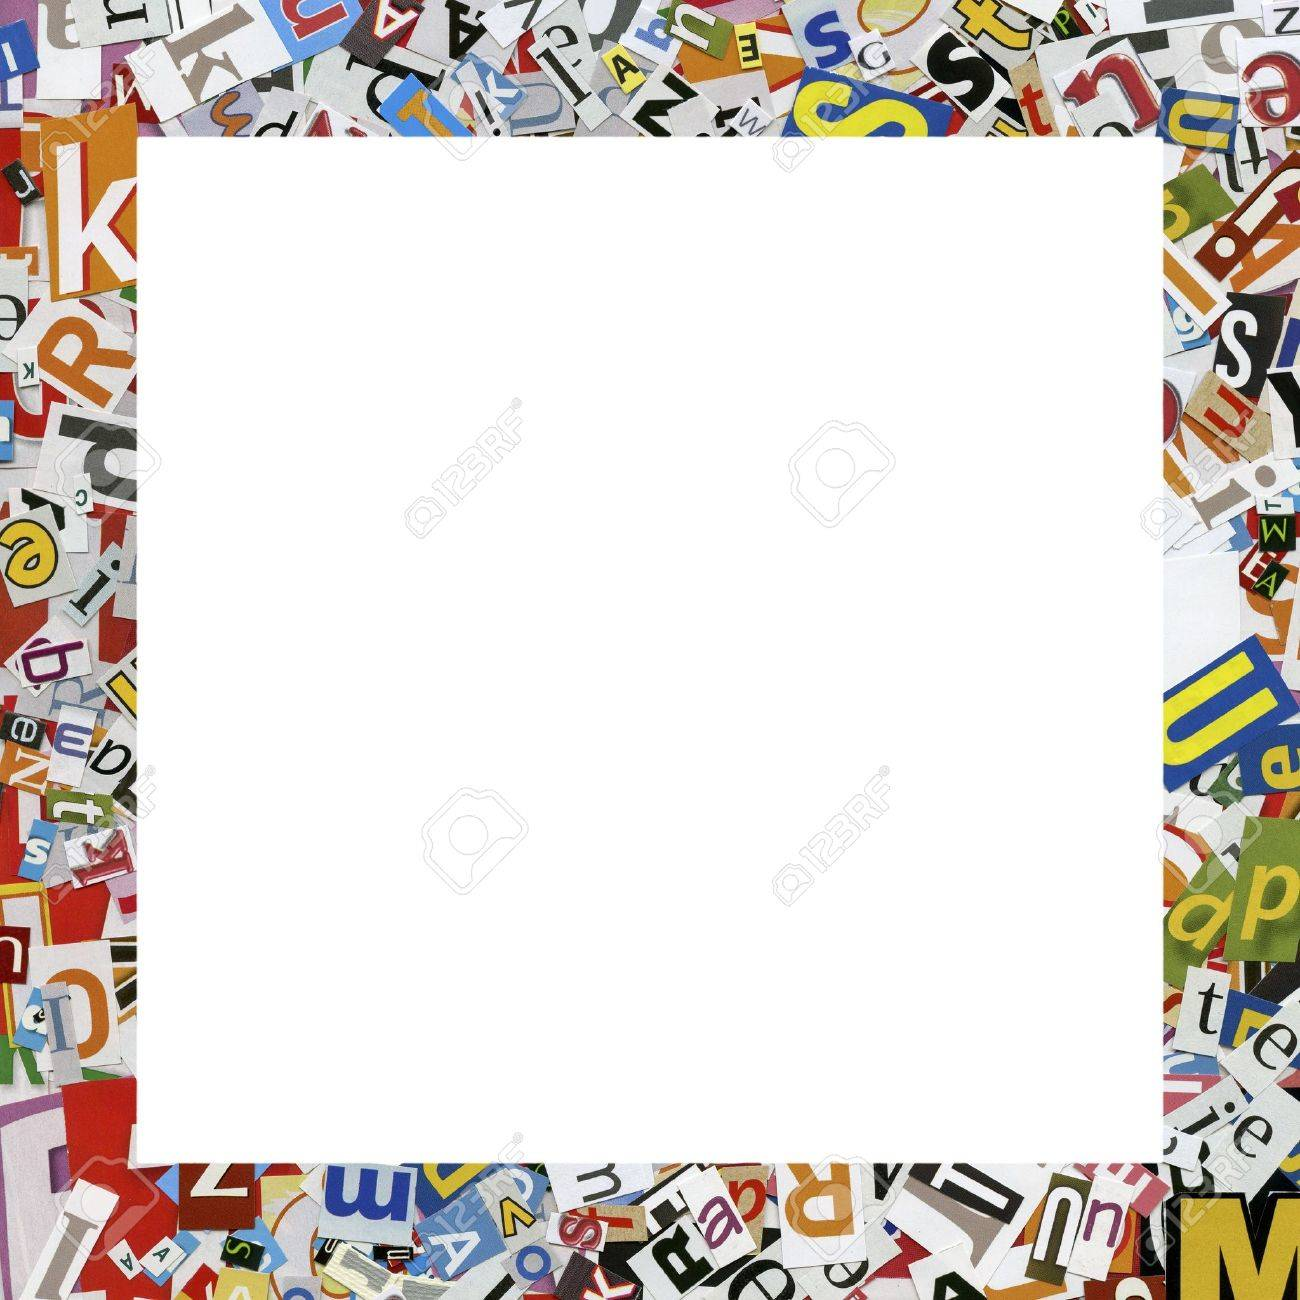 designed frame collage made of newspaper clippings stock photo 20339630